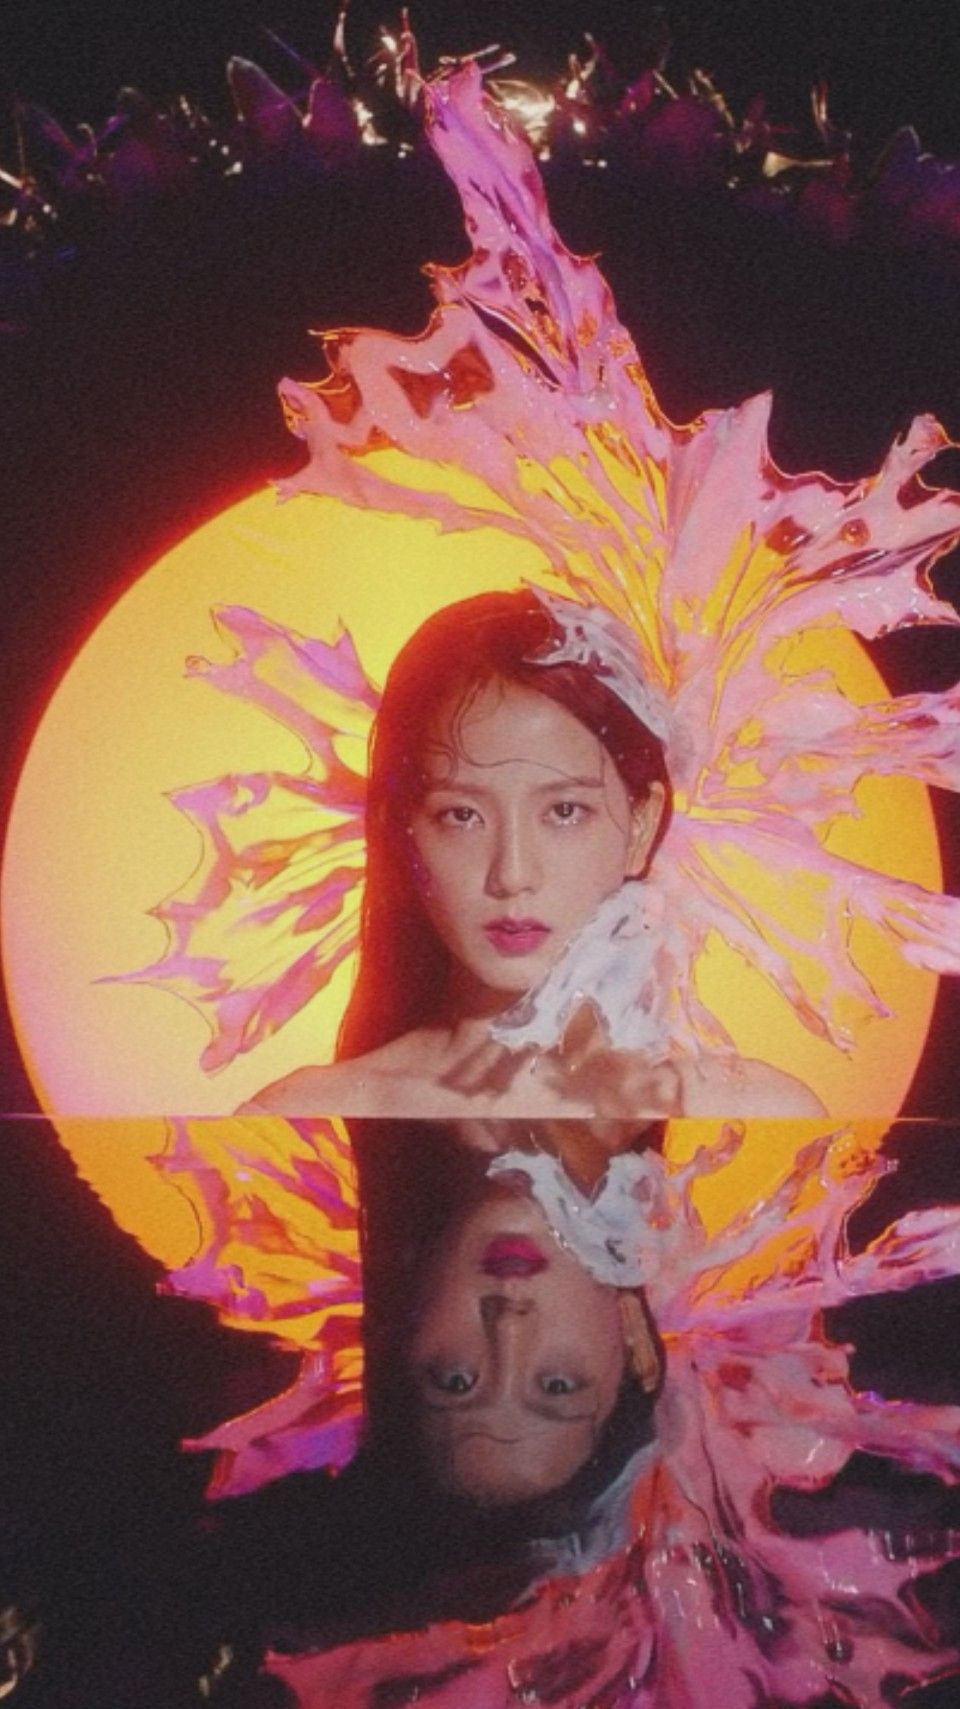 Free Download Jisoo Blackpink Kill This Love Wallpaper Mv In 2019 960x1709 For Your Desktop Mobile Tablet Explore 12 Blackpink Kill This Love Wallpapers Blackpink Kill This Love Wallpapers